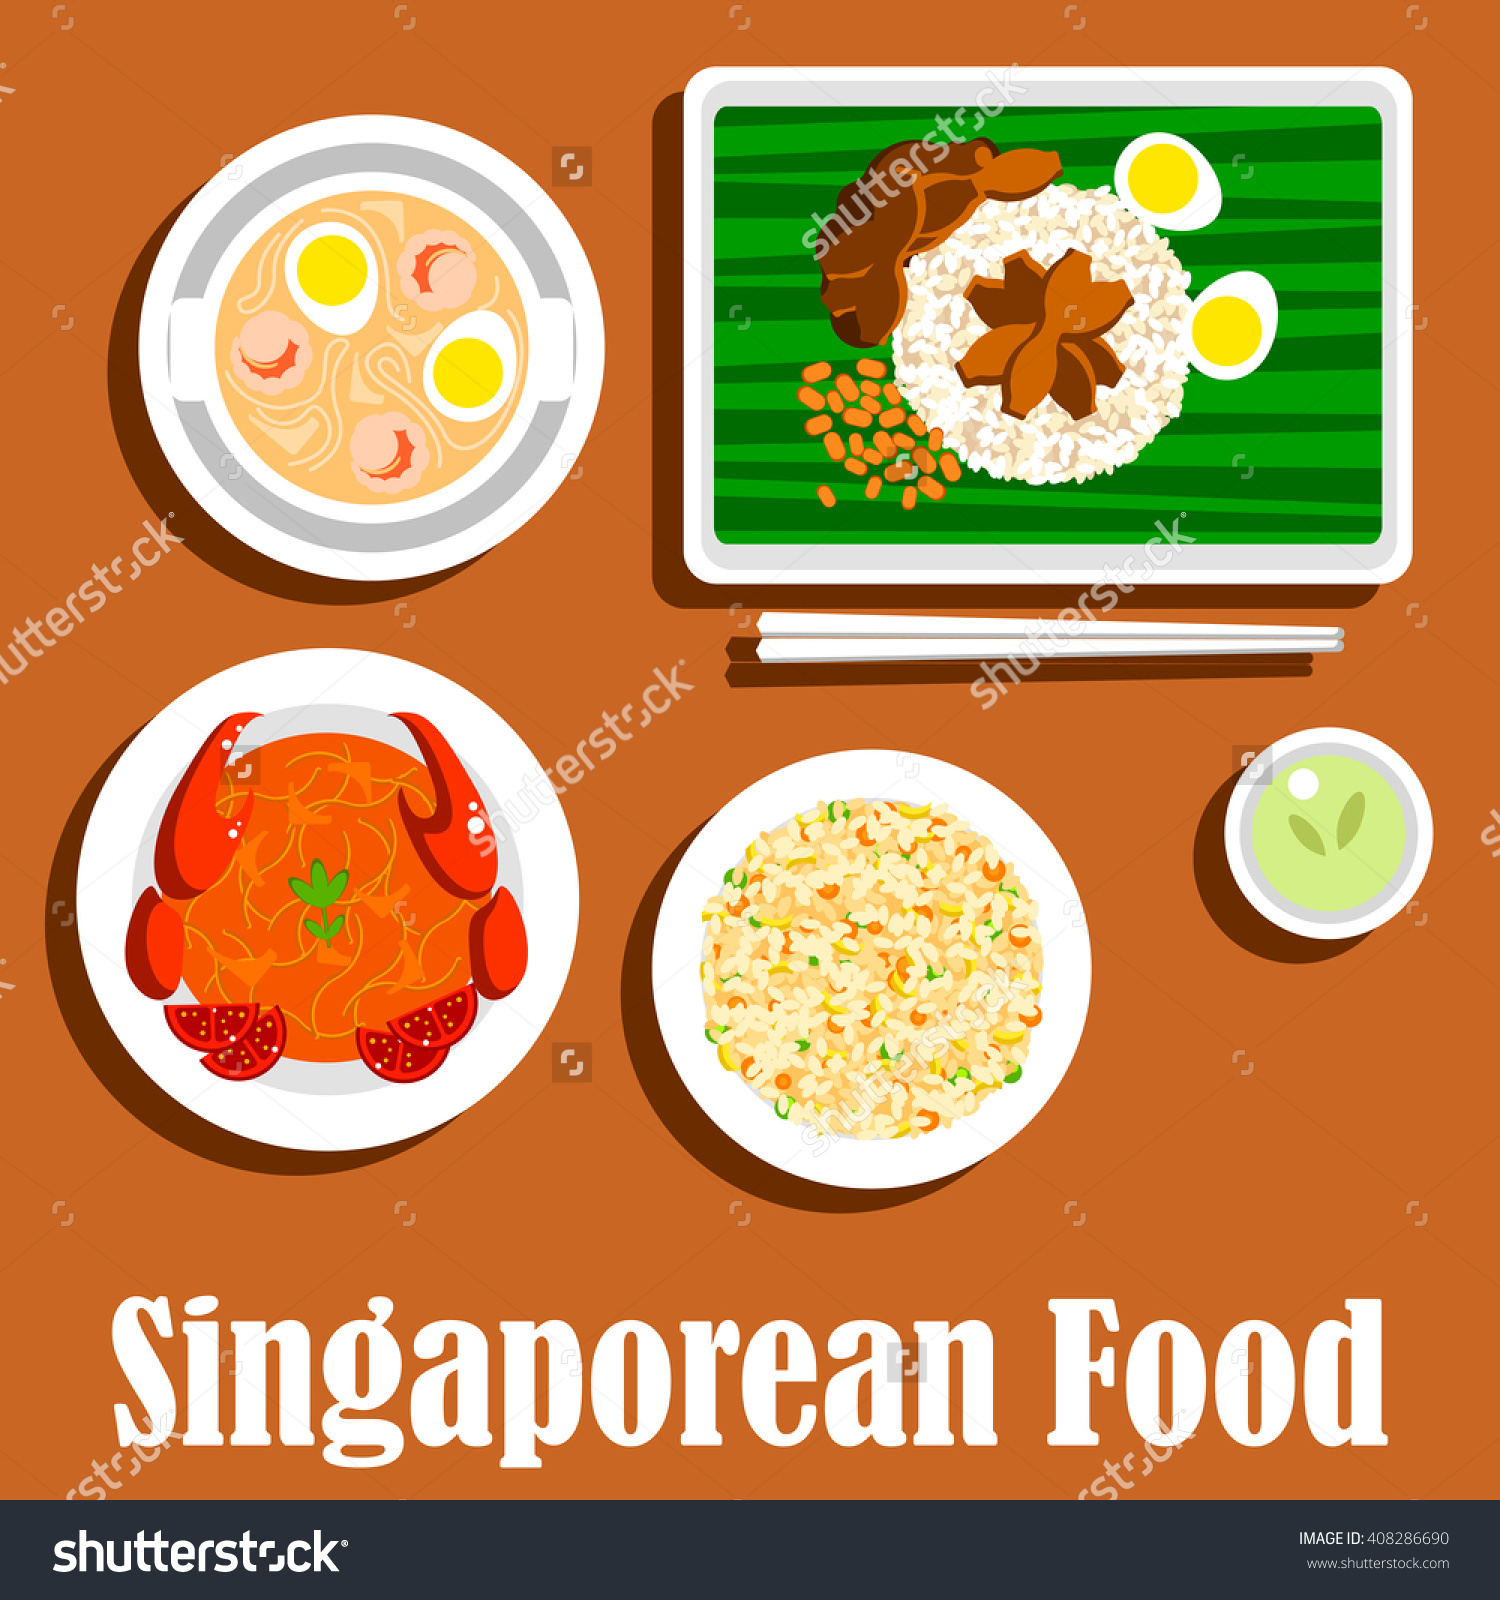 Singaporean Cuisine Fried Rice Nasi Goreng Stock Vector 408286690.